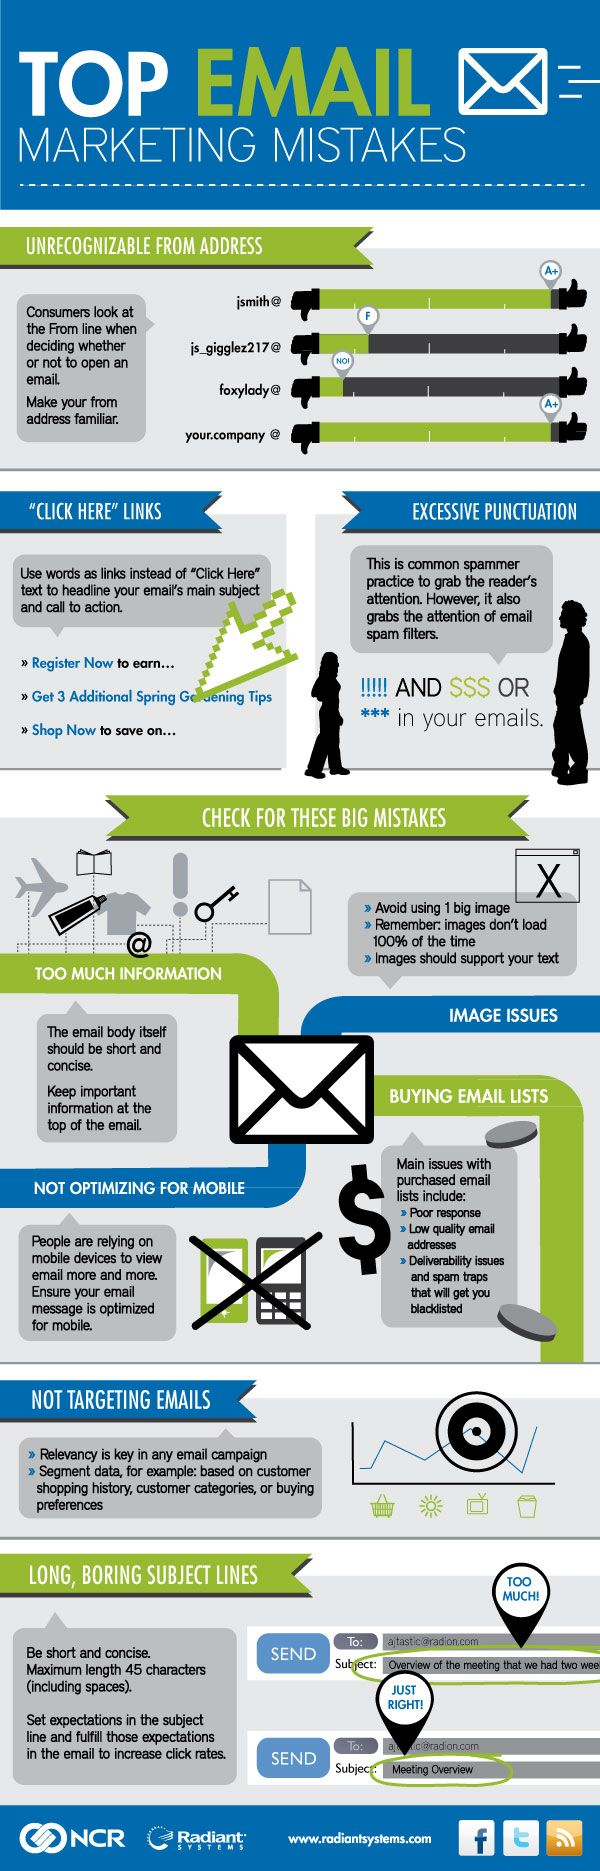 Top #Email #Marketing Mistakes #infographic